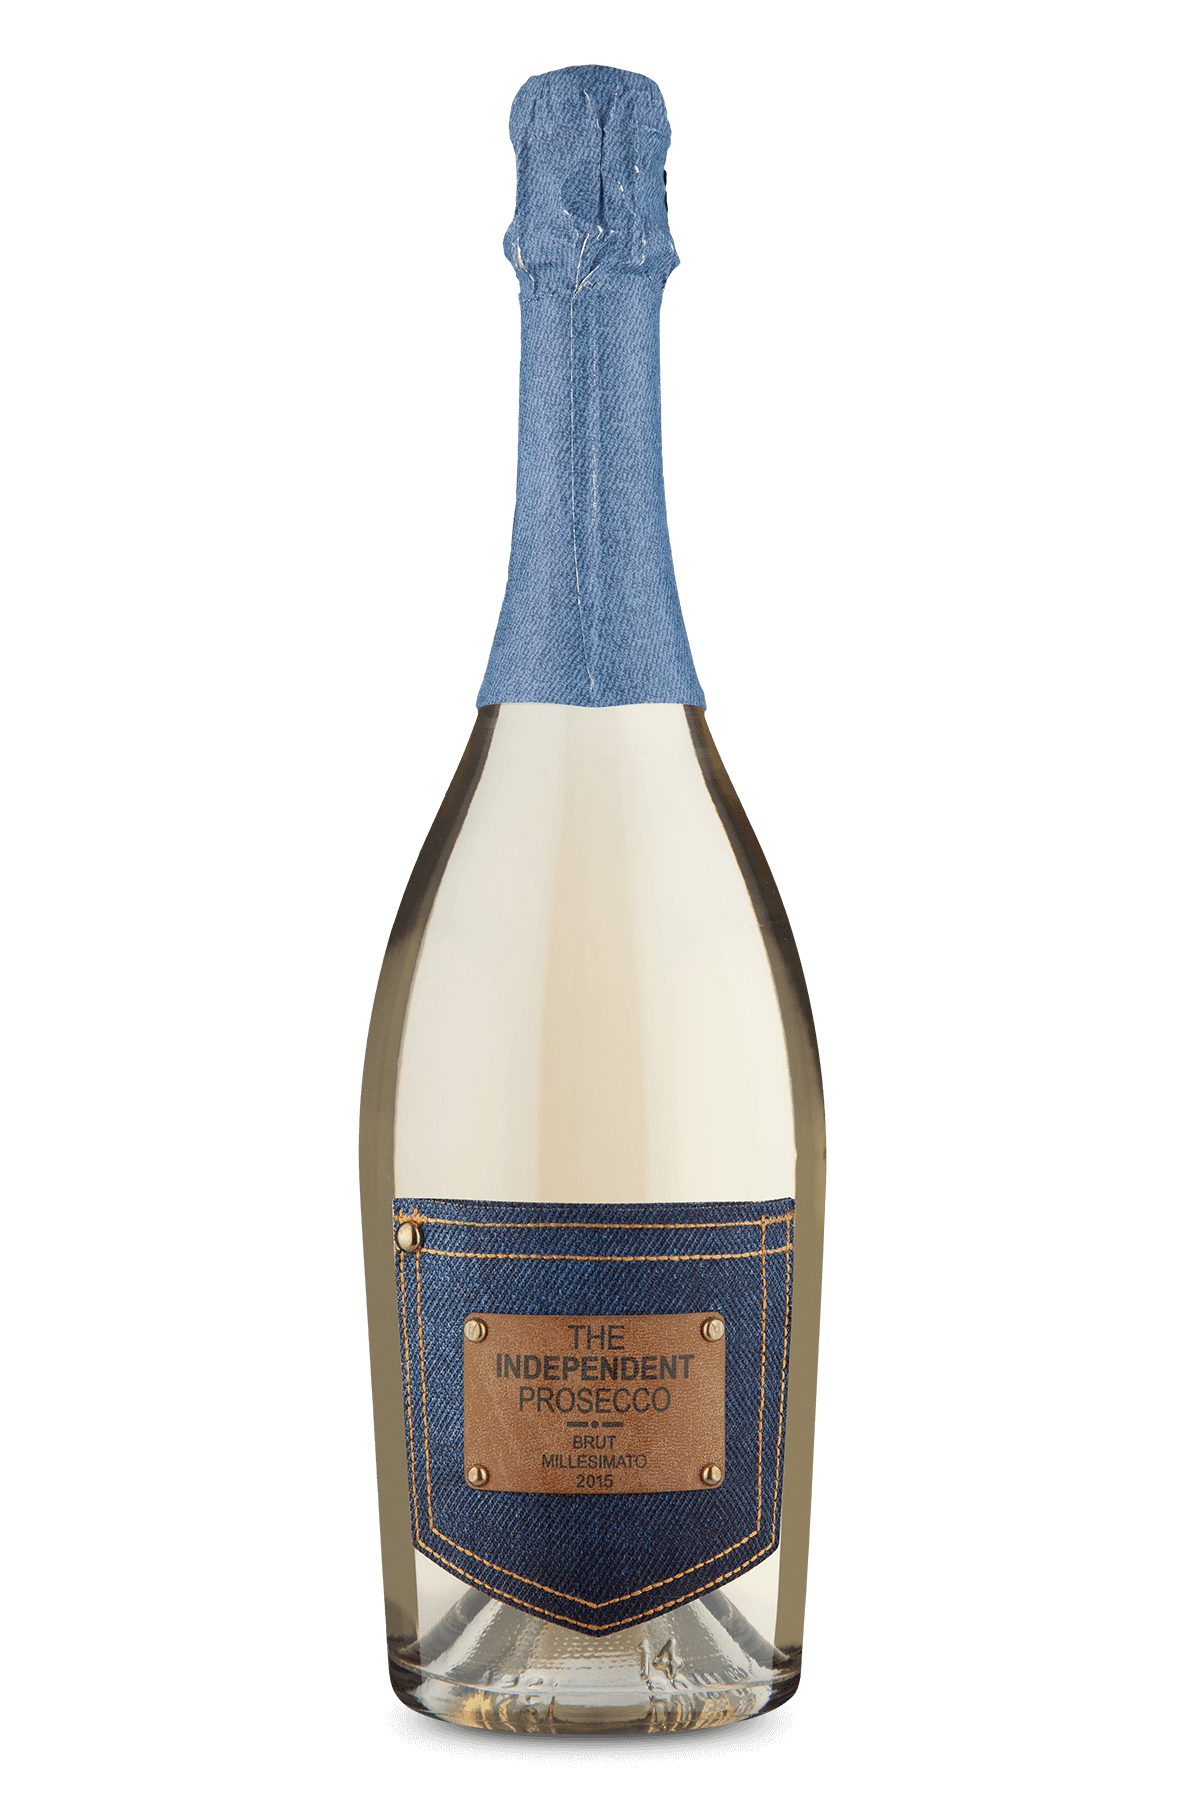 Espumante Fantinel The Independent Prosecco Denim Edition Brut 2015